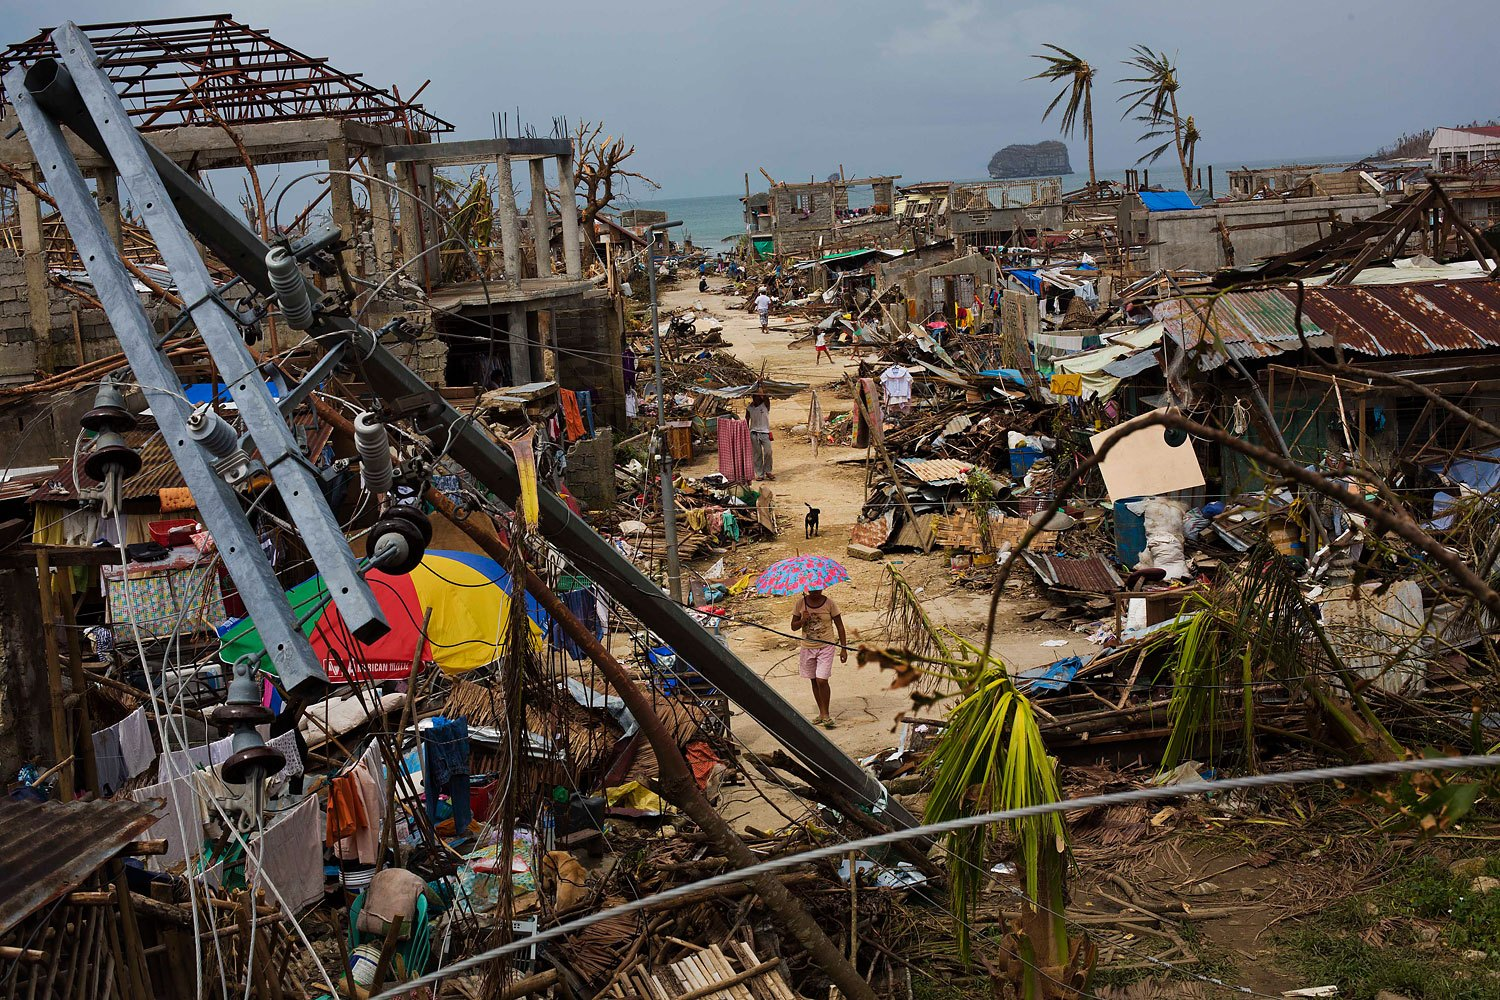 Typhoon Haiyan survivors walk through ruins in the village of Maraboth, in the Philippines on November 14, 2013.